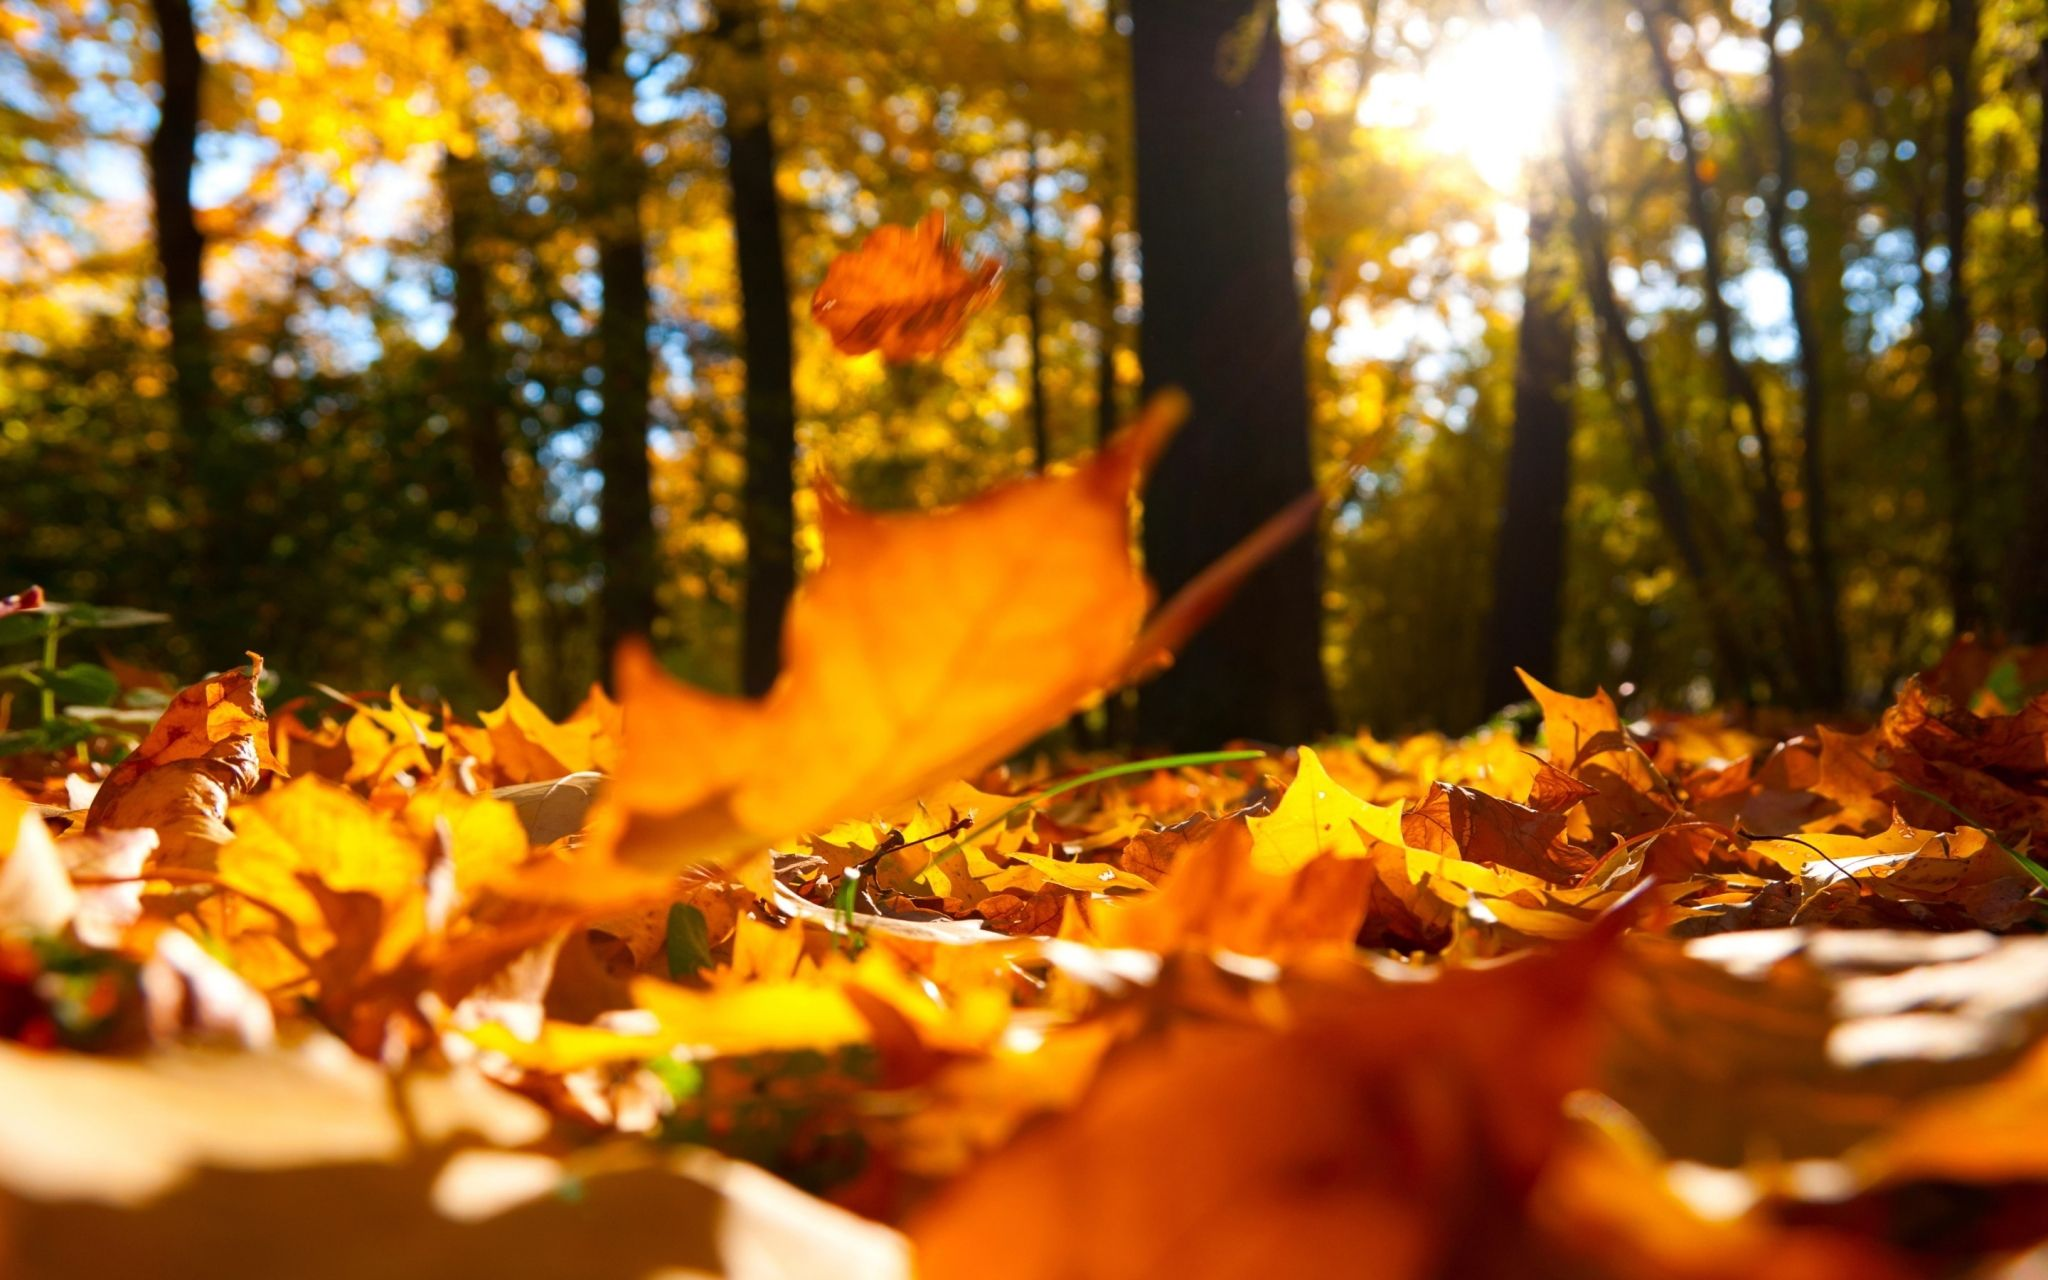 Autumn Hd Widescreen Wallpapers For Laptop Autumn Leaves Wallpaper Autumn Photography Laptop Wallpaper